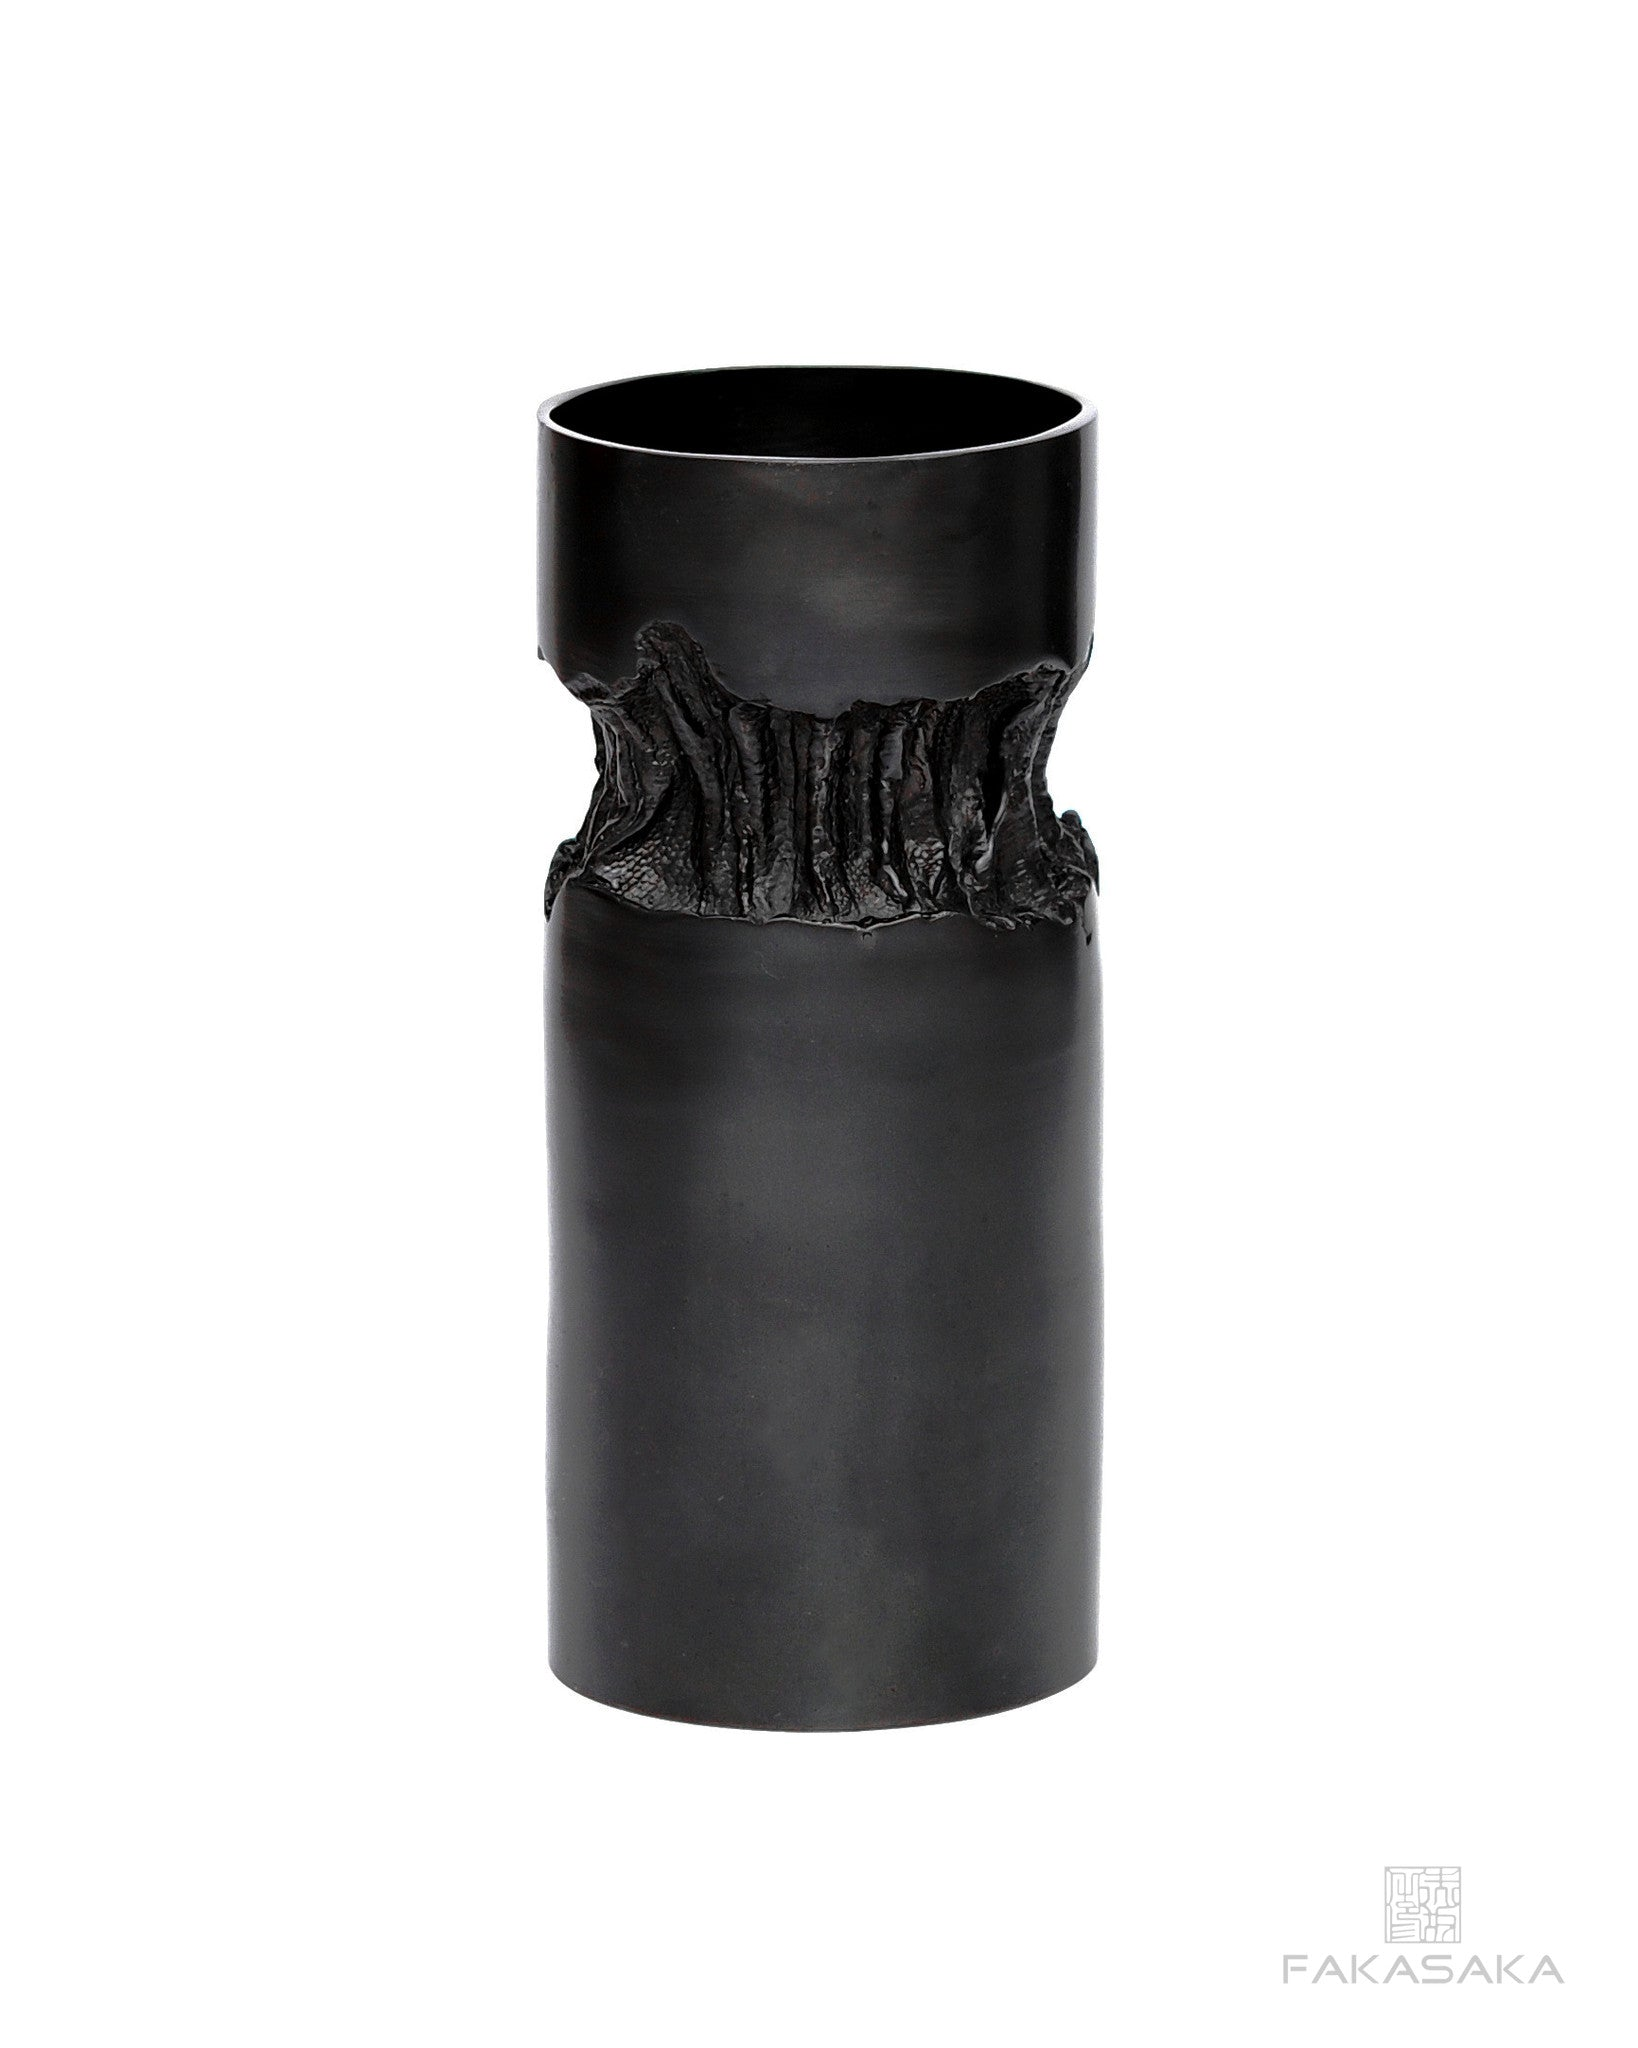 METAL HEART 2 VASE<br><br>DARK BRONZE